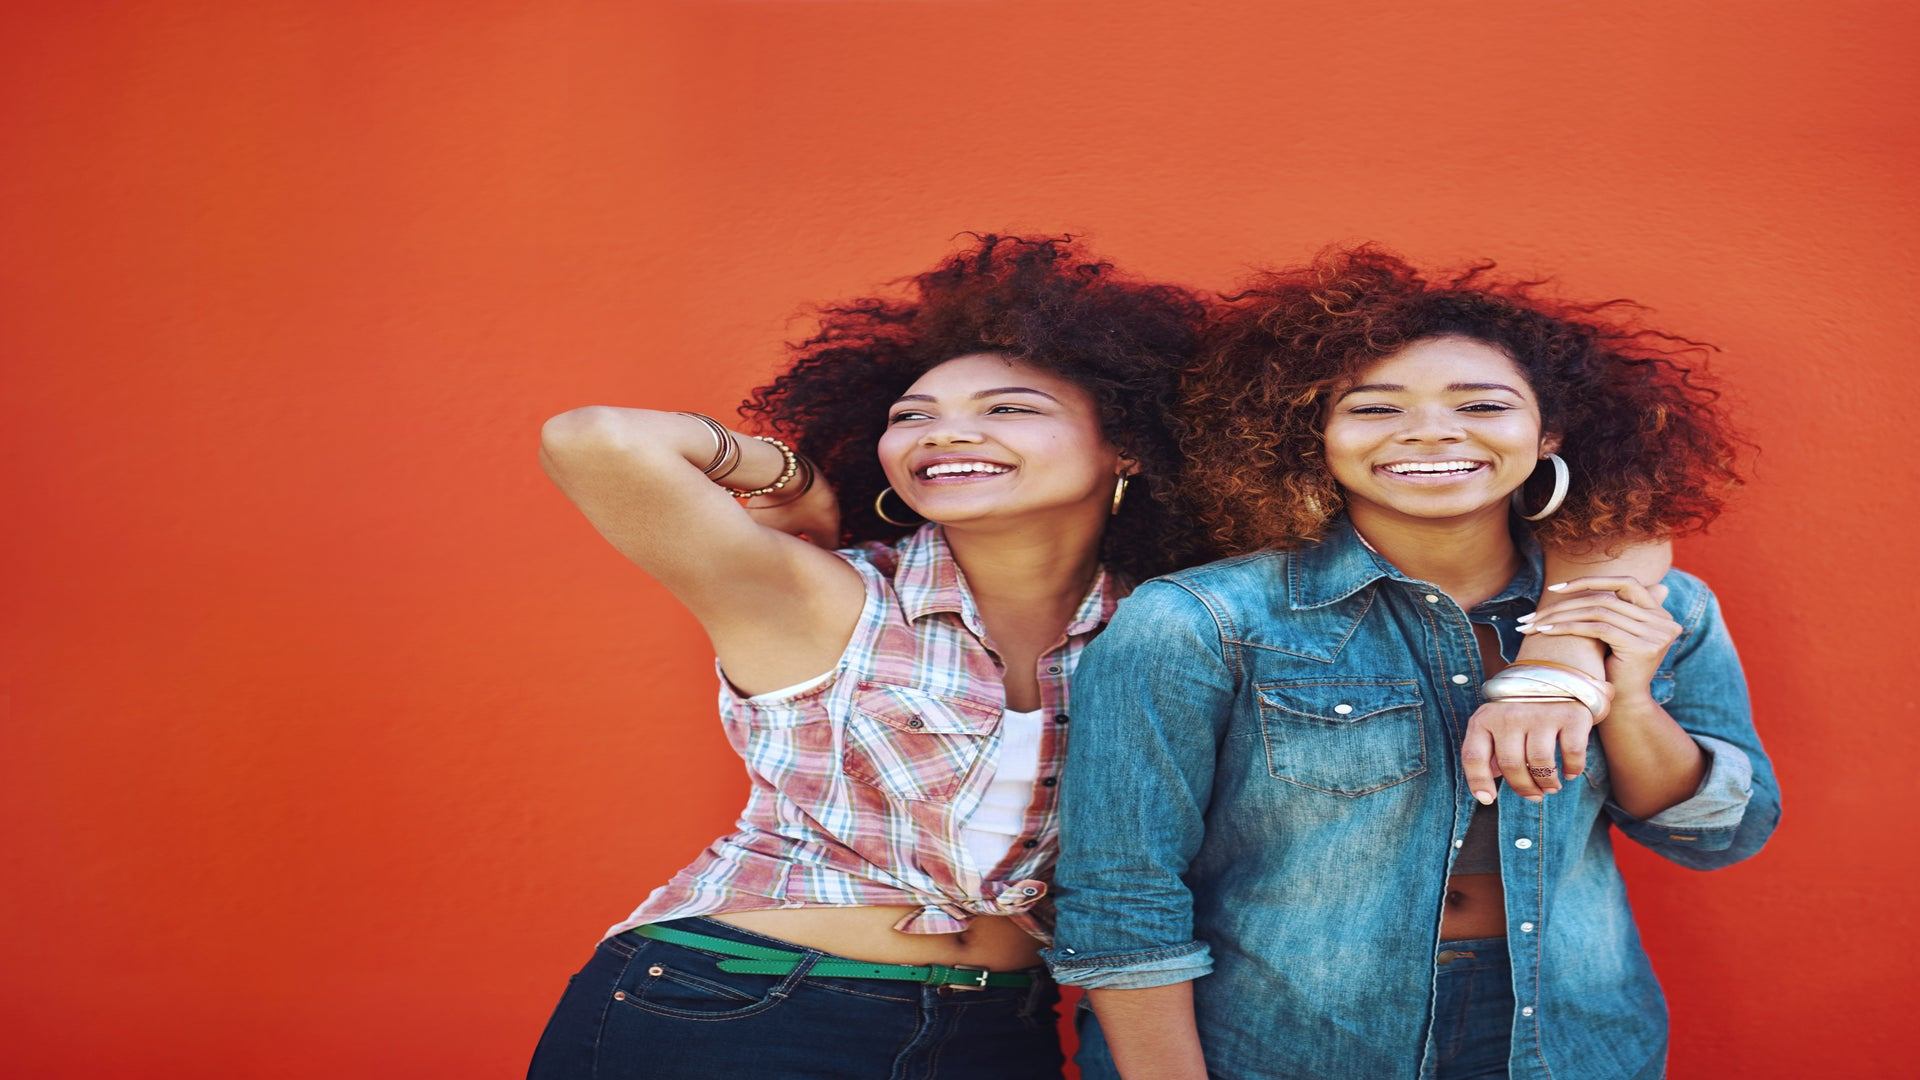 A Foolproof Guide for Selecting the Best Natural Hair Extensions